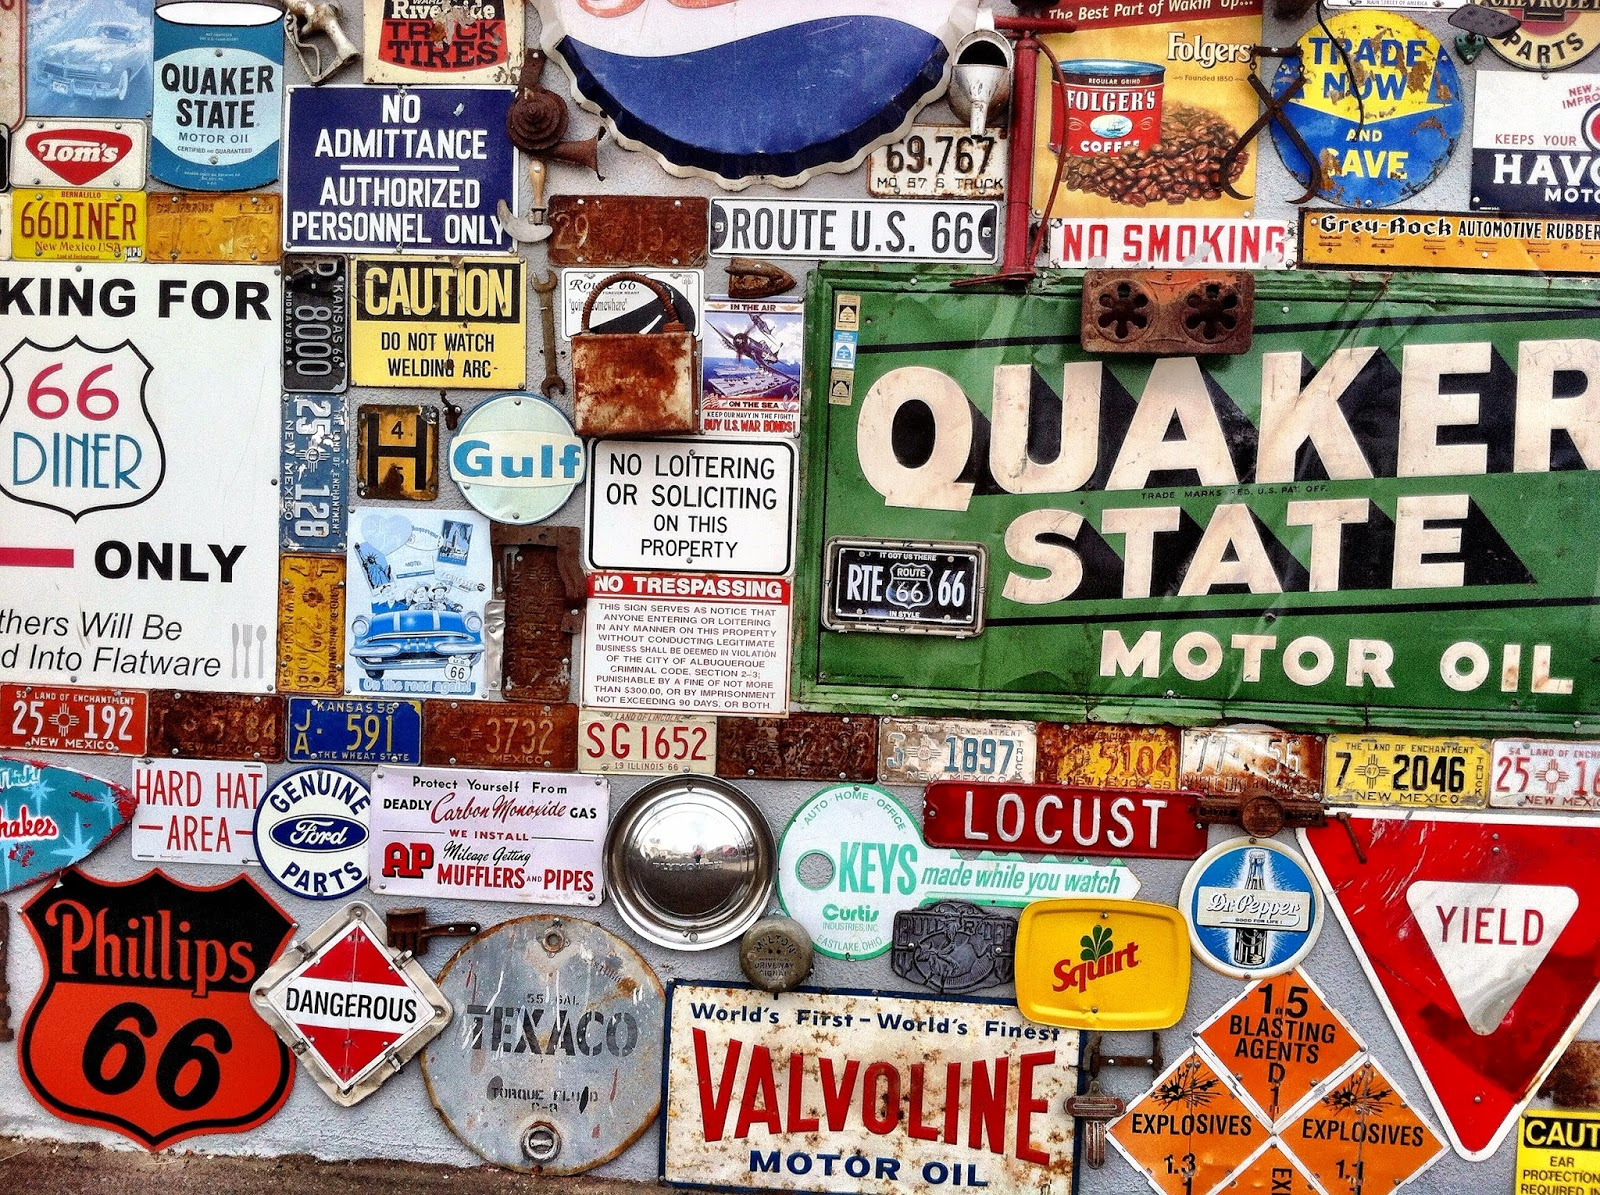 route 66 roadside signs and advertisements